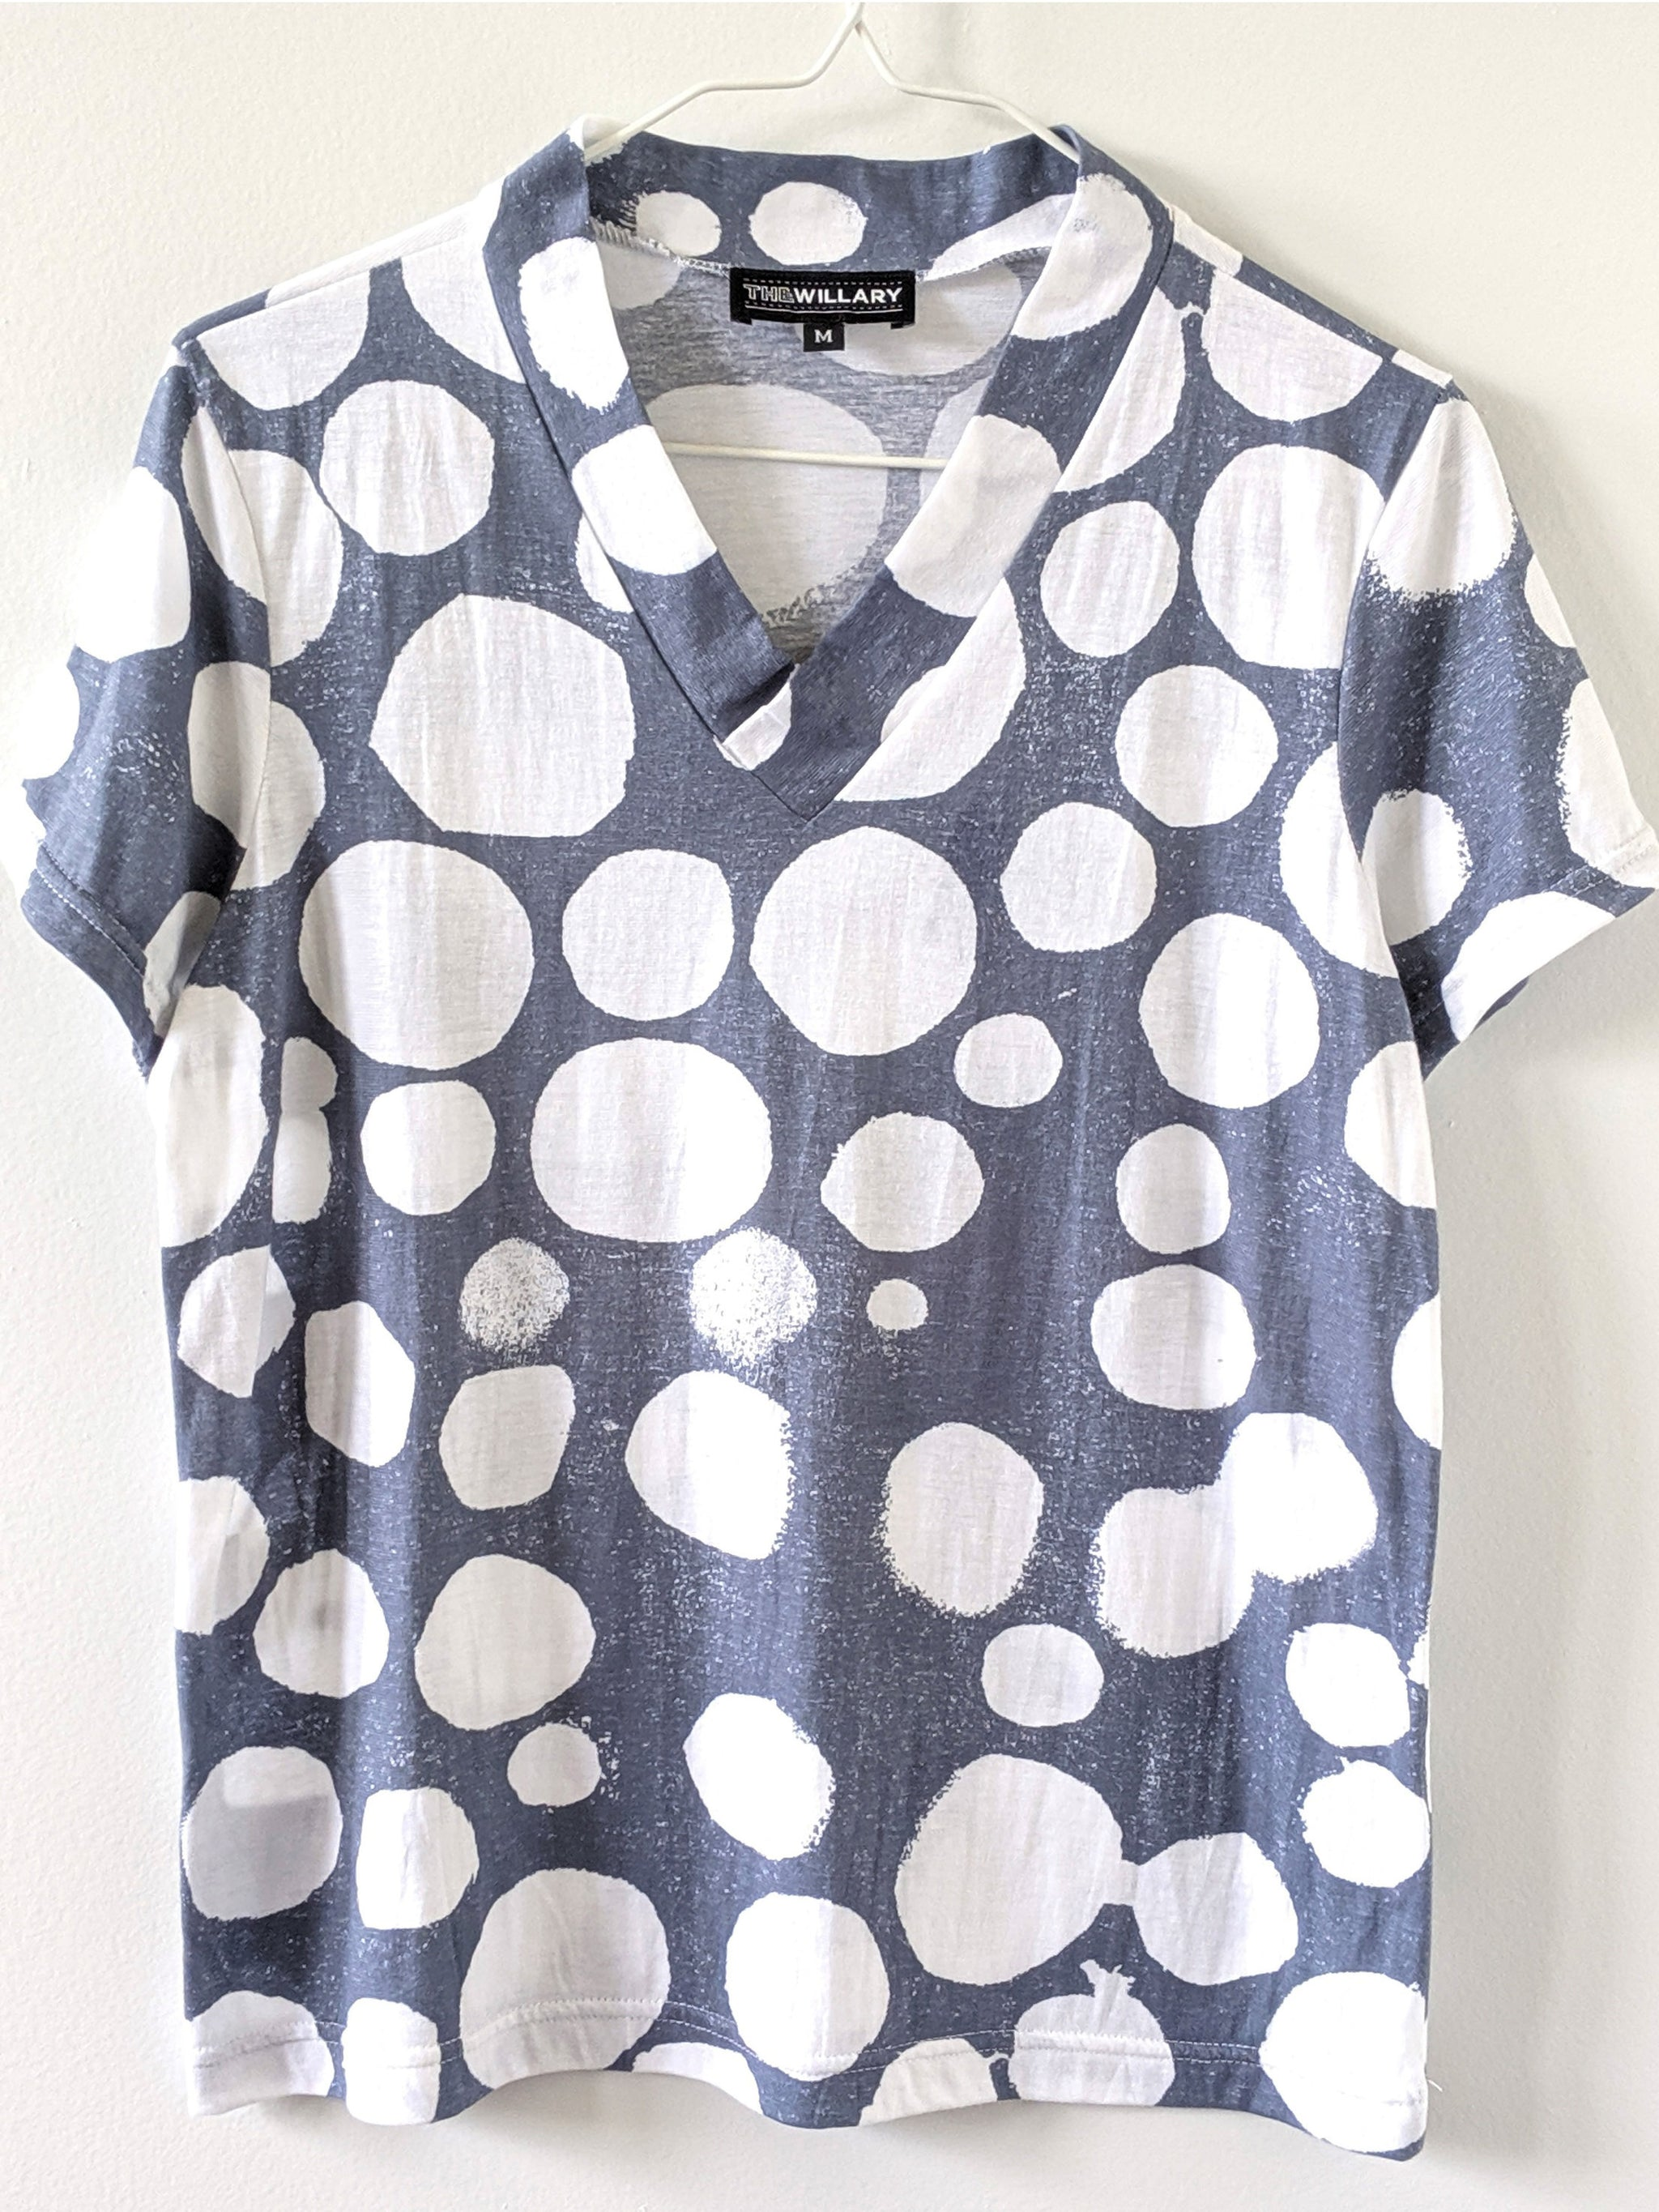 Workshop 5: Pop-Collar V-Neck Tee